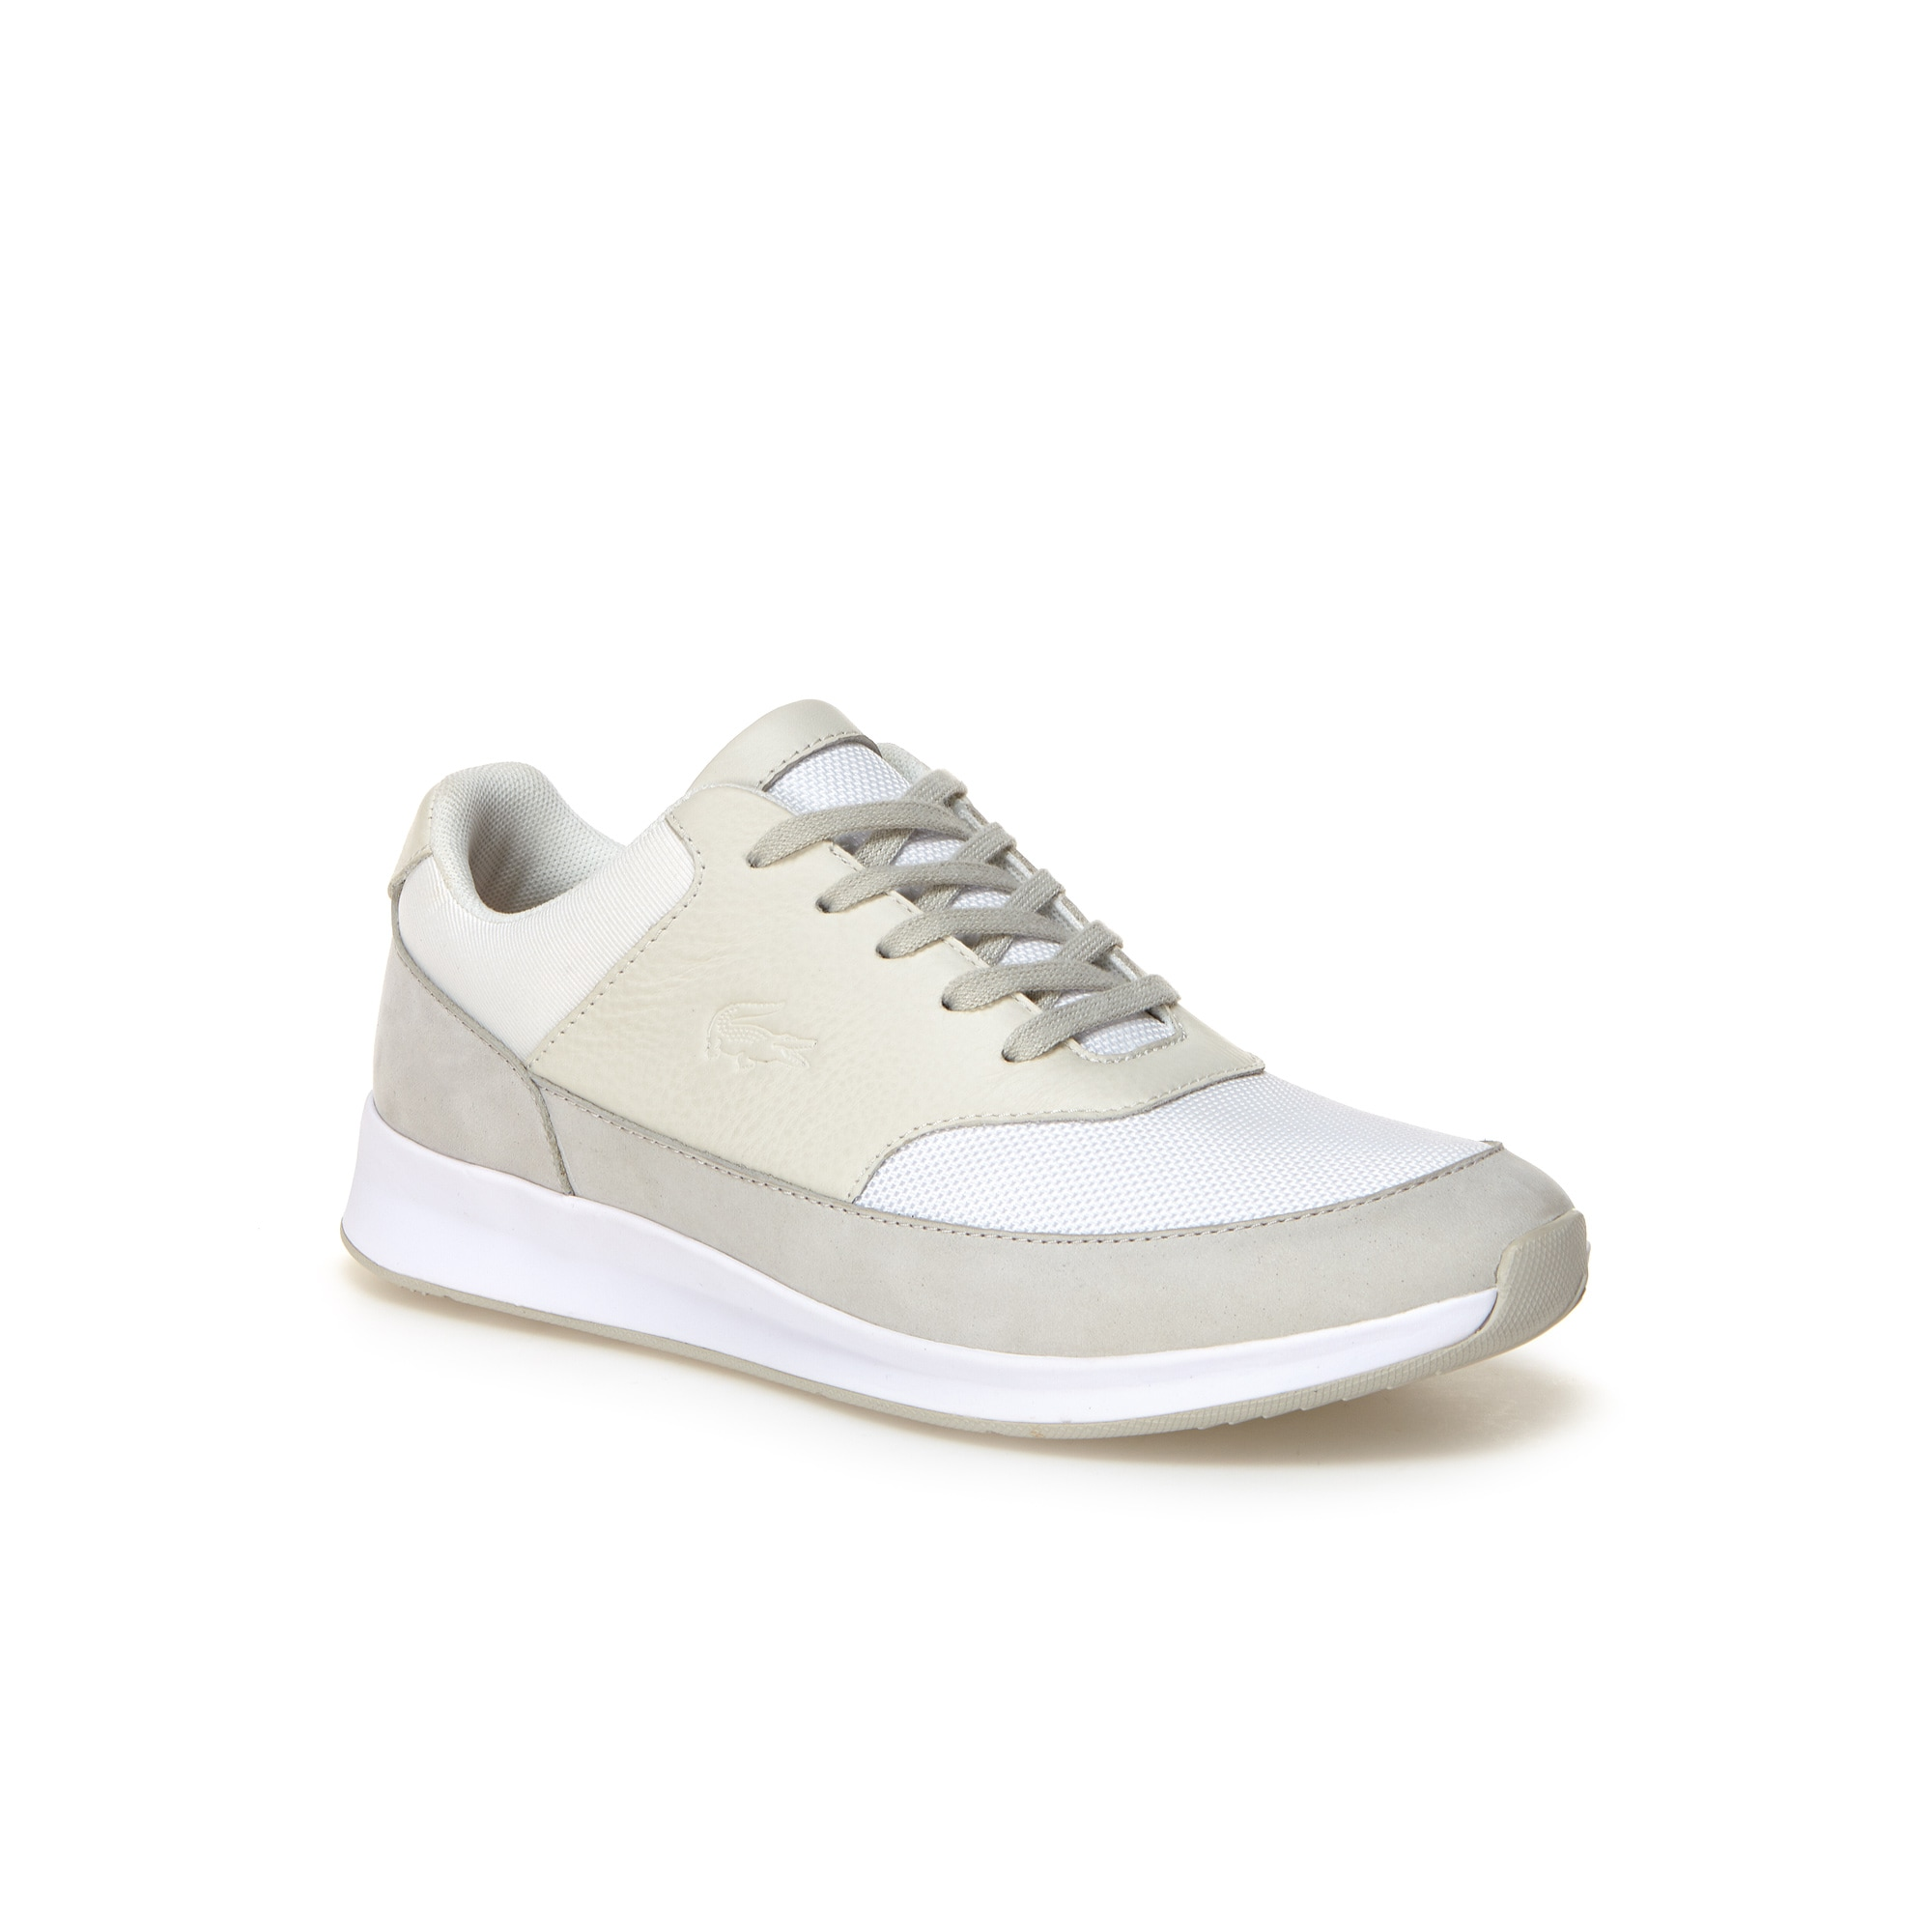 Women's Chaumont Mixed Material Trainers